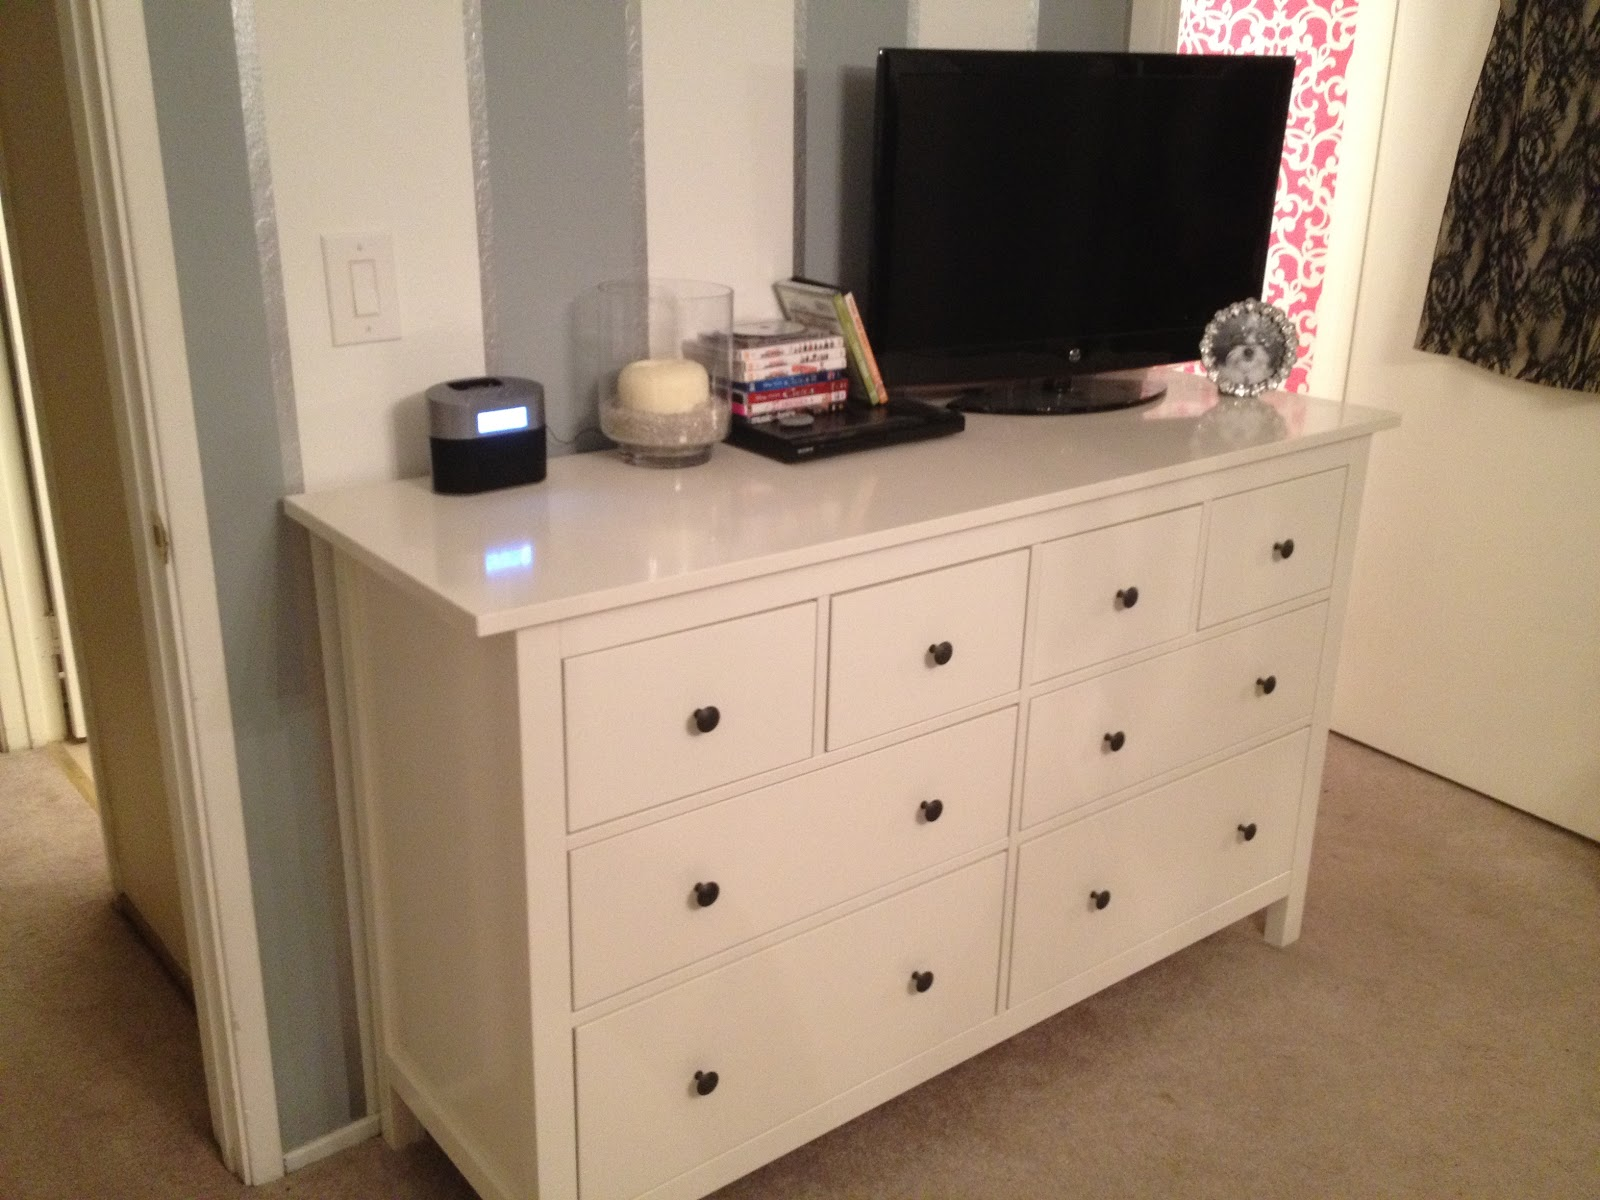 TV Stand That Looks Like a Dresser